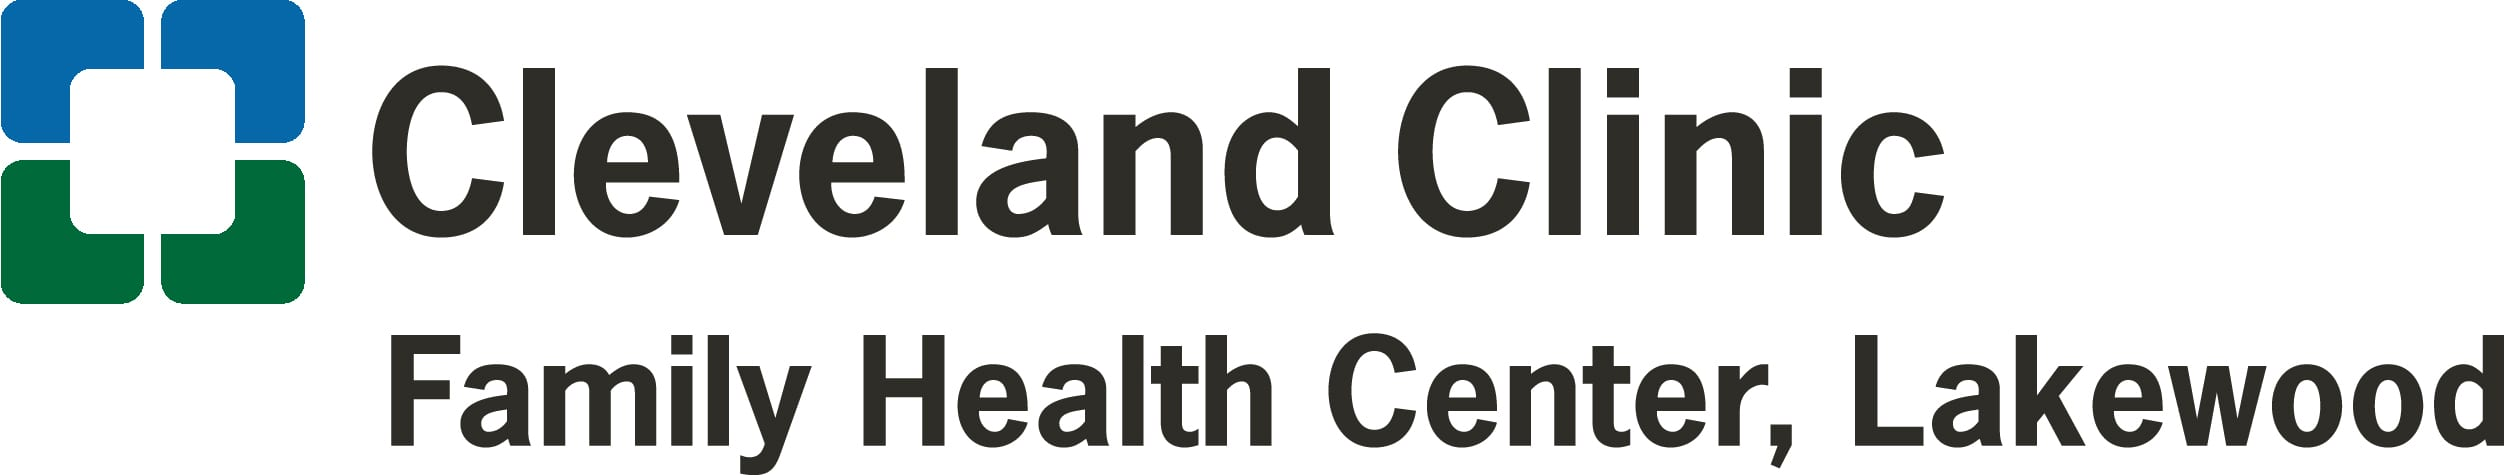 Cleveland Clinic Lakewood Family Health Center Logo